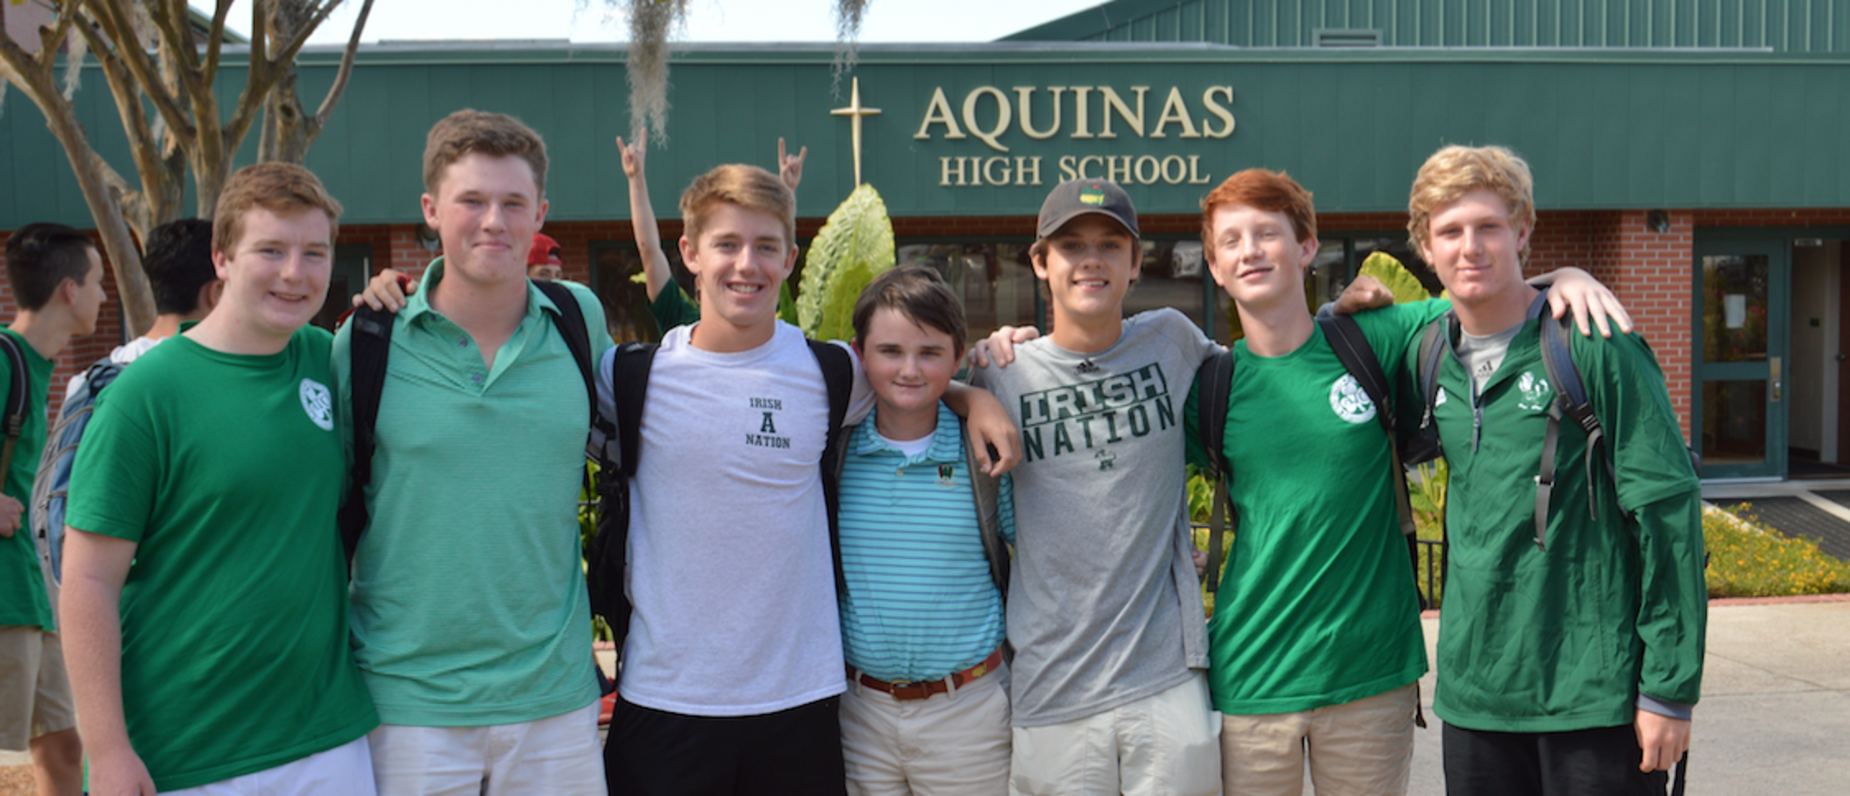 Proud Aquinas students